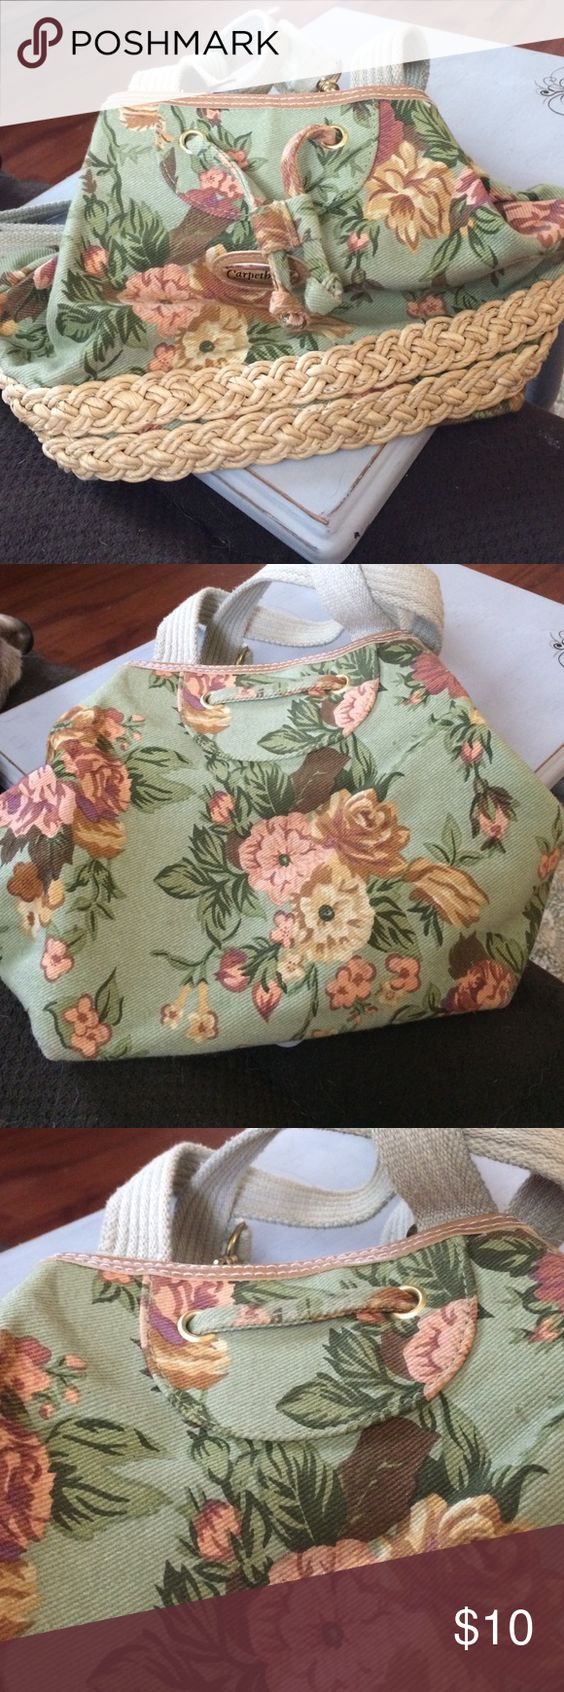 Carpet Bags Small Backpack Cute floral bag! It's small, maybe 8x8. Has jute trim around the bottom of it. In excellent condition. Bags Backpacks